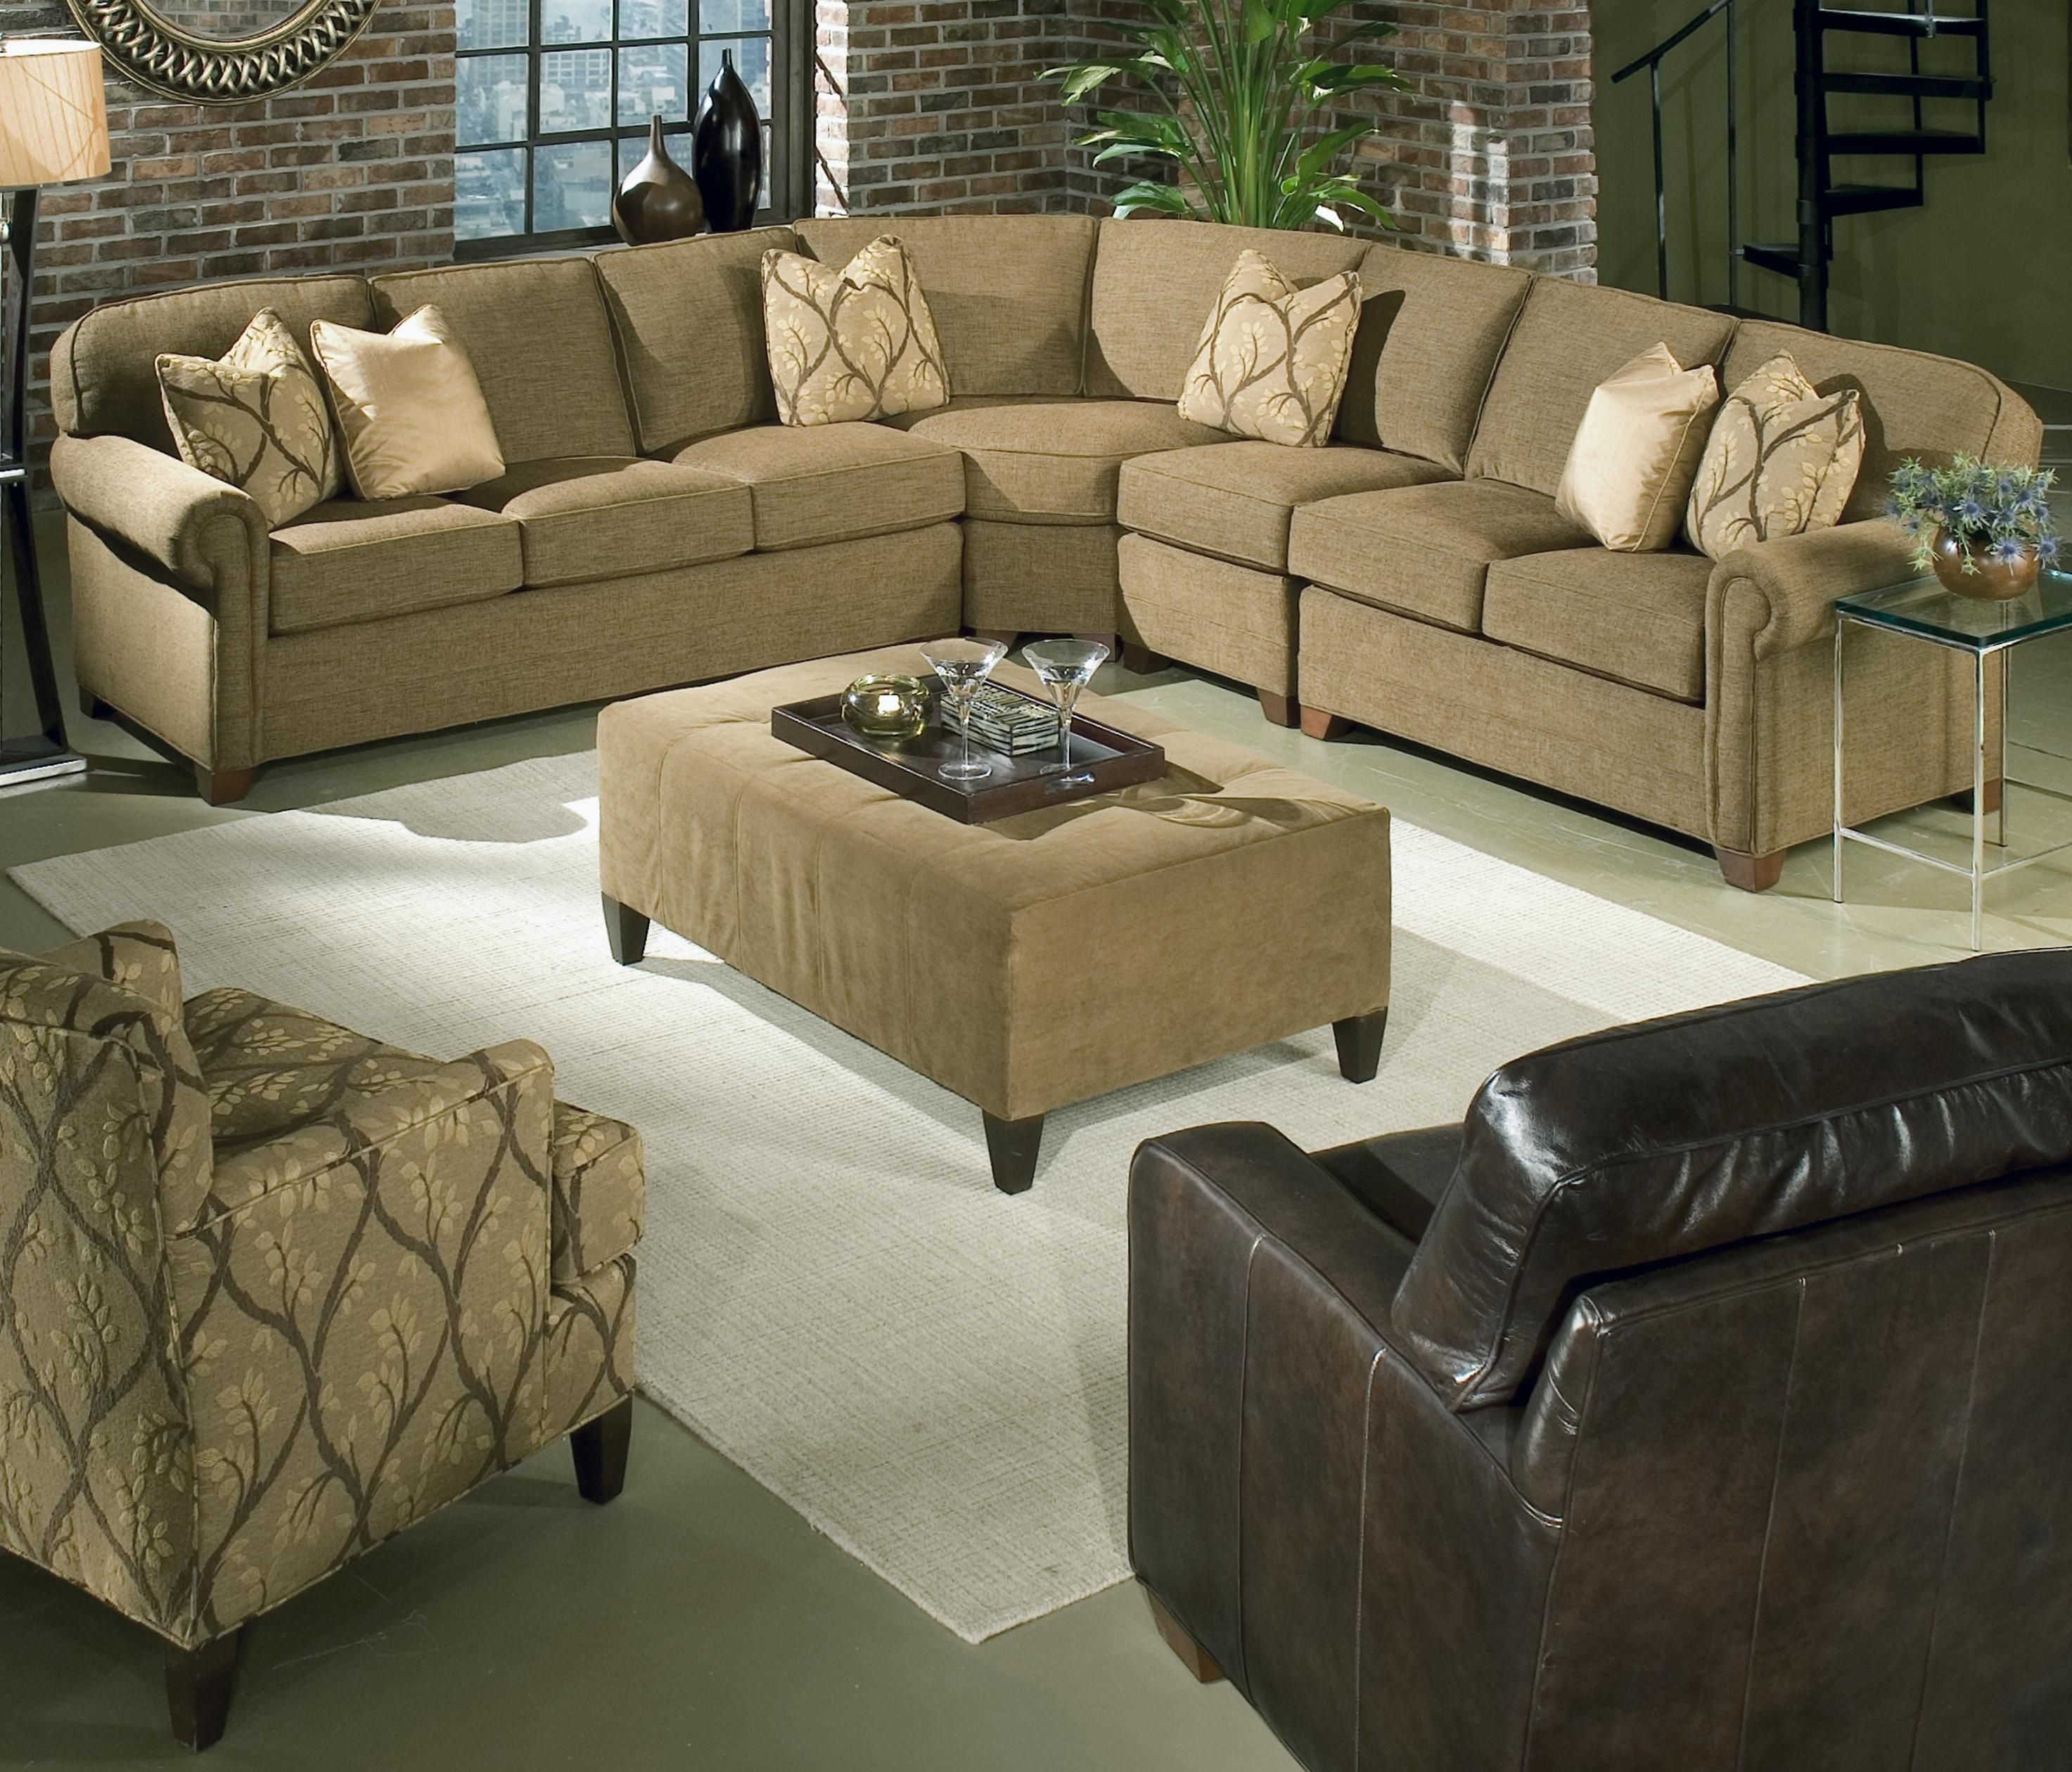 Brighton 4 Piece Sectionalking Hickory | All Things Softball With Regard To Hickory Nc Sectional Sofas (Image 1 of 10)